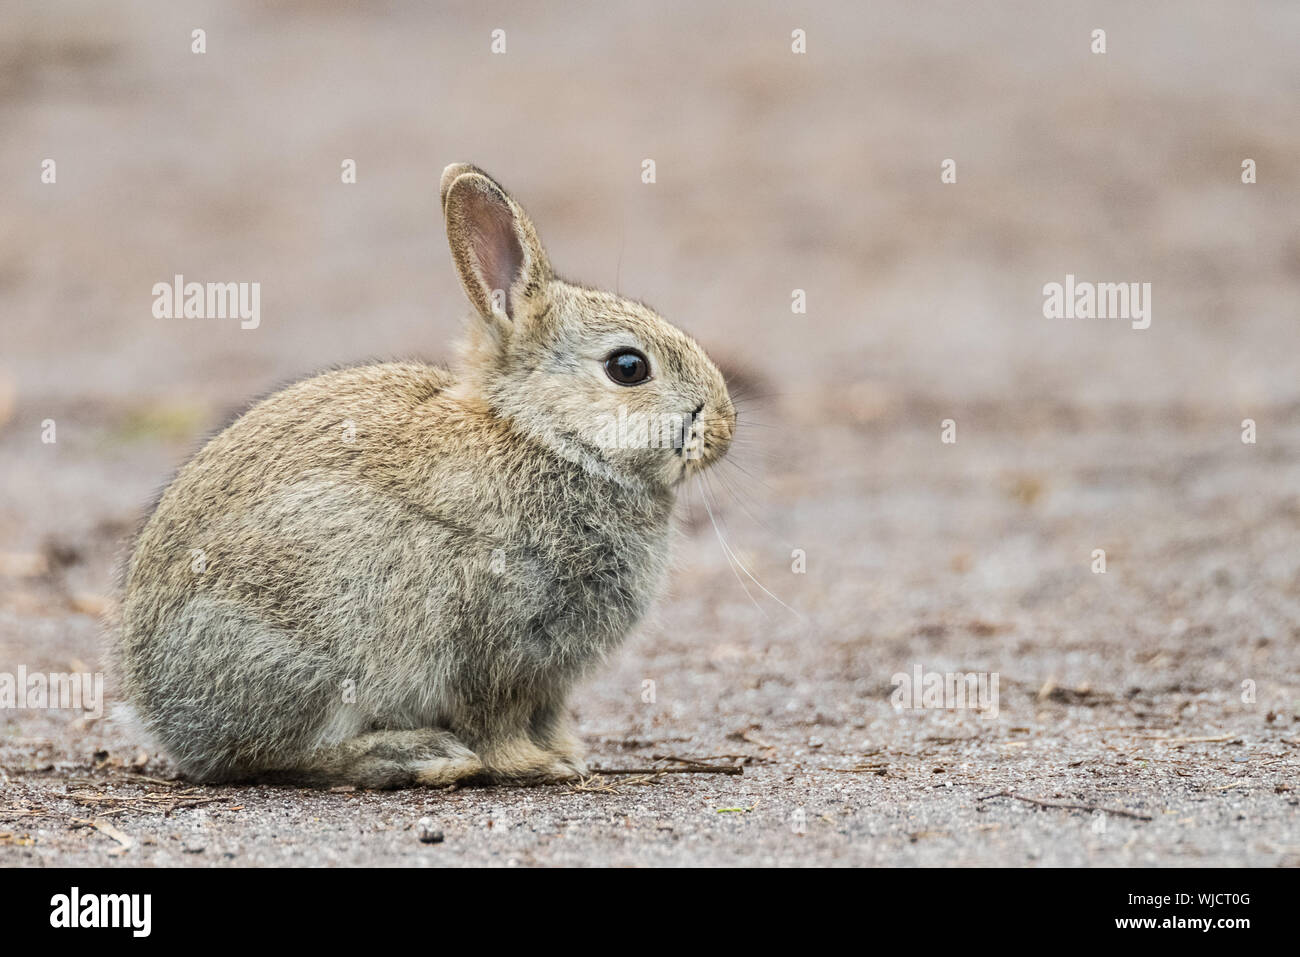 Free Bunny Footprints Cliparts, Download Free Clip Art, Free Clip Art on  Clipart Library